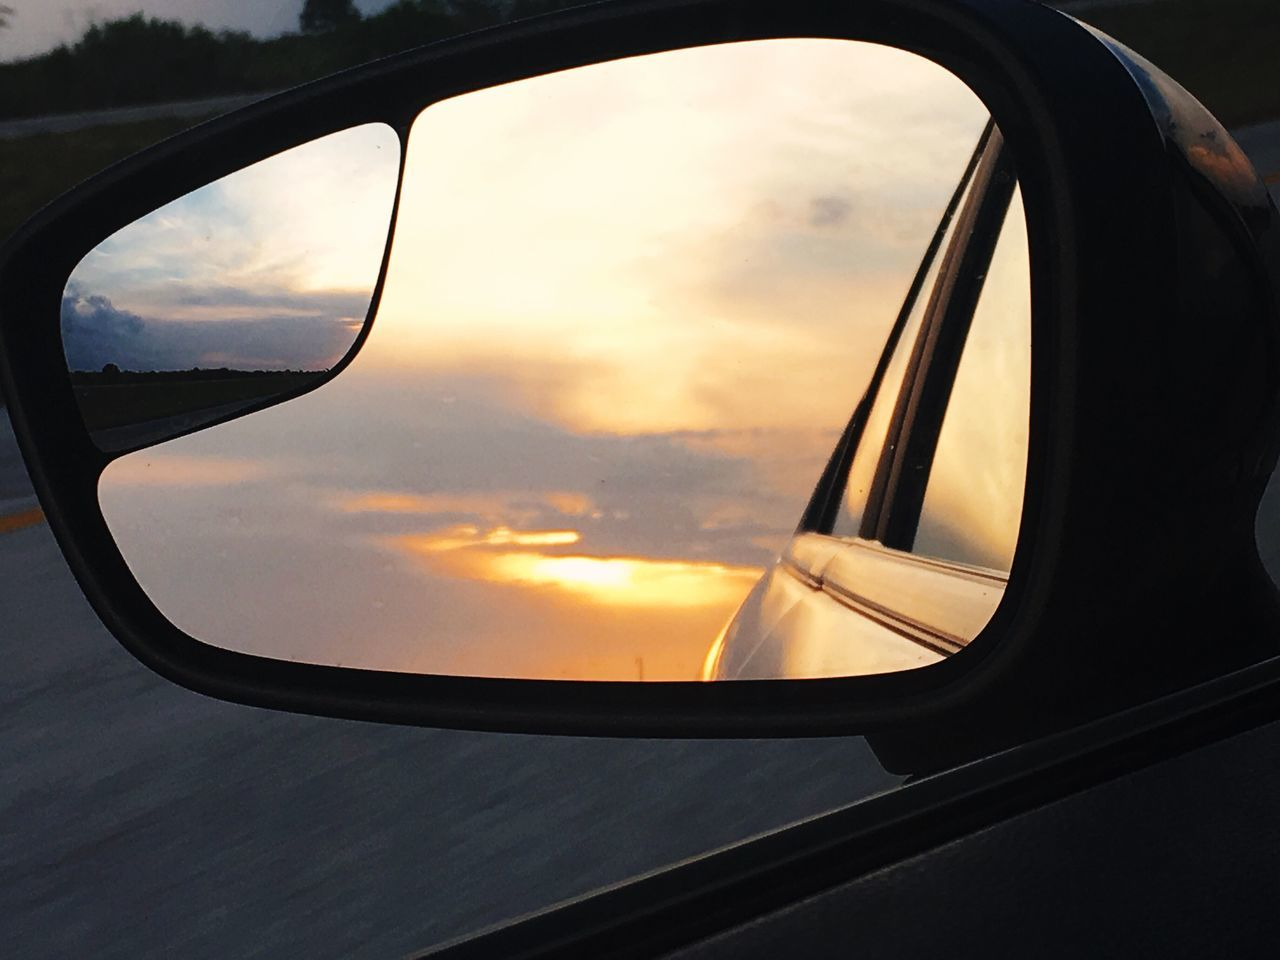 Rearviewmirror Sunset MeinAutomoment The Journey Is The Destination On The Way Home